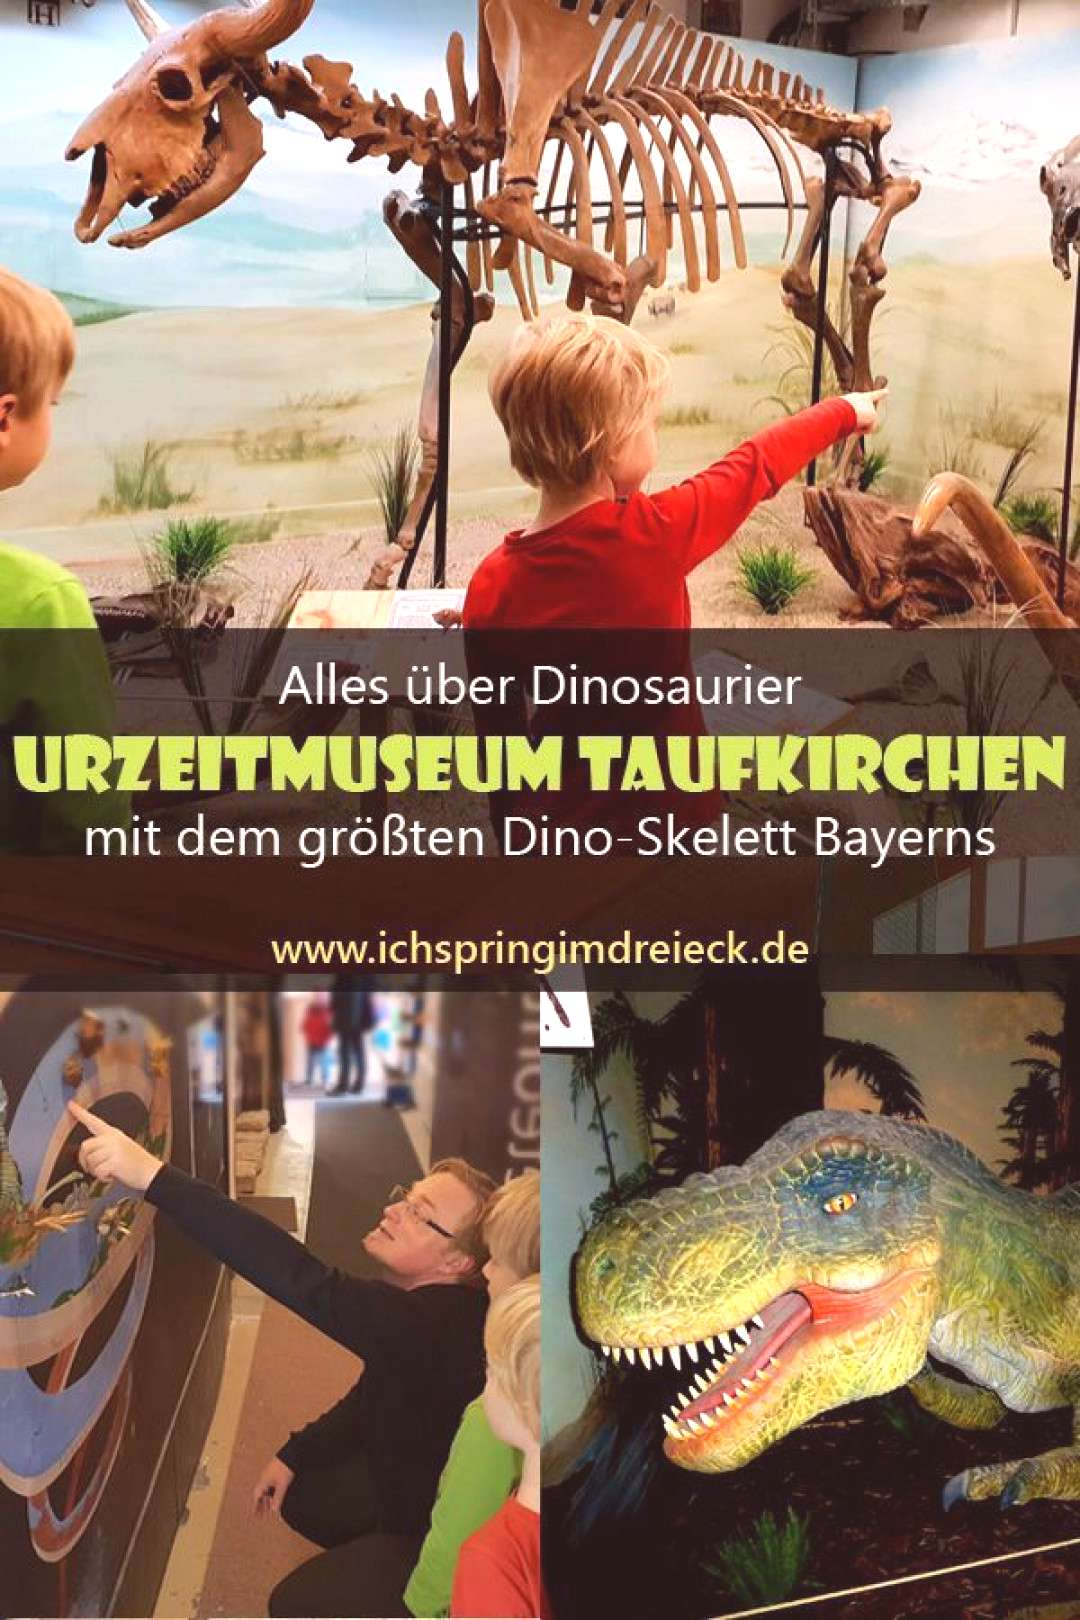 All about dinosaurs the Urzeitmuseum Taufkirchen with the largest dinosaur skeleton in Bavaria -